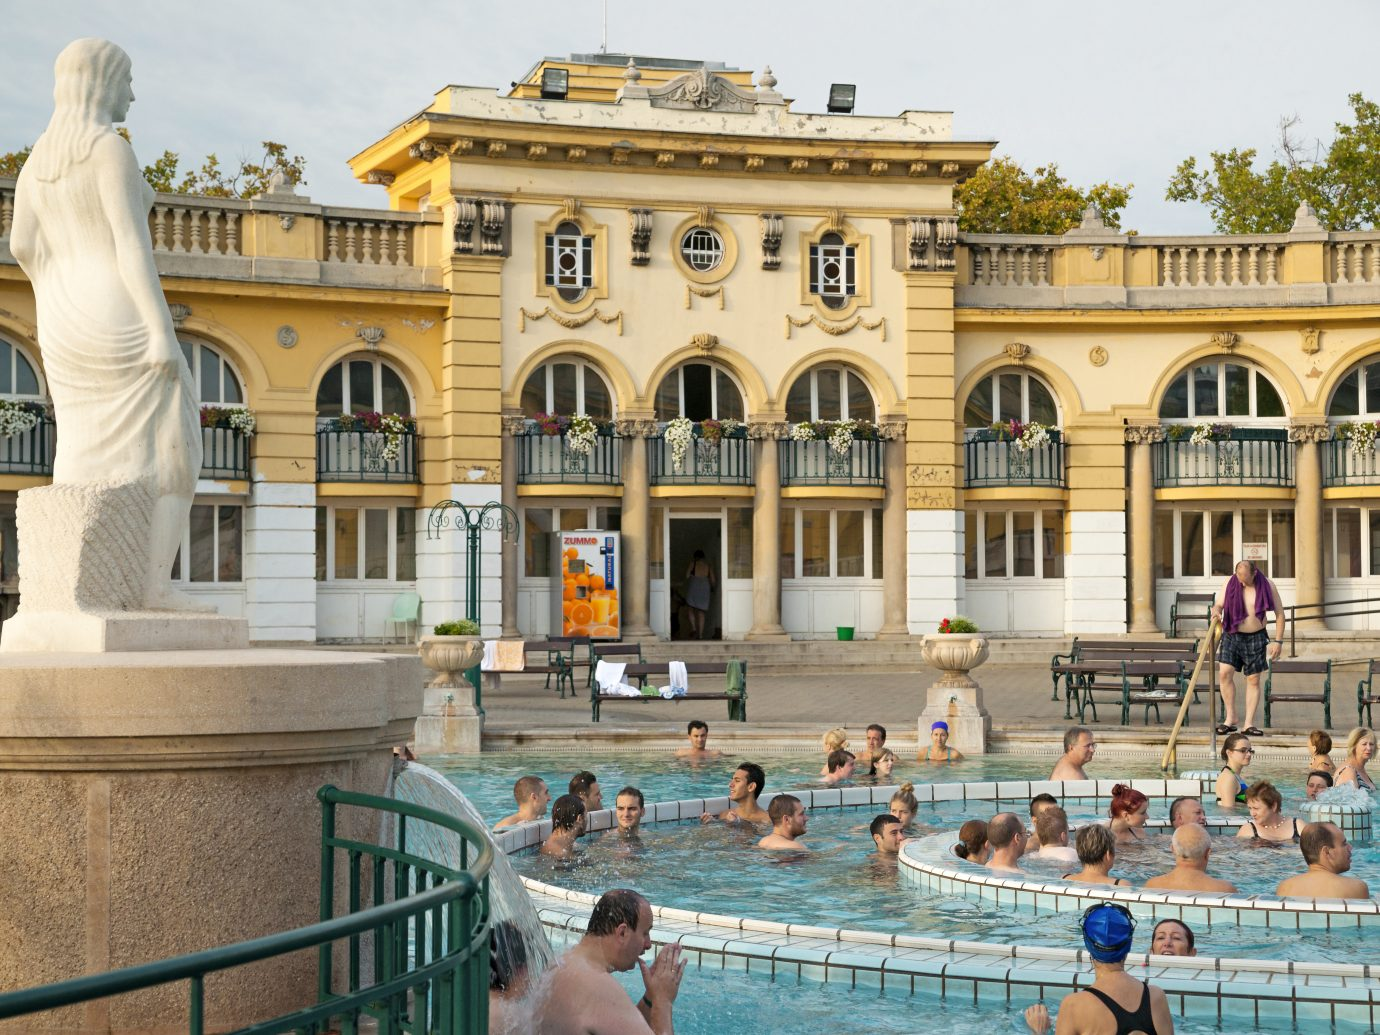 Bathers relaxing and soaking in healing mineral waters of Szechenyi Thermal Baths